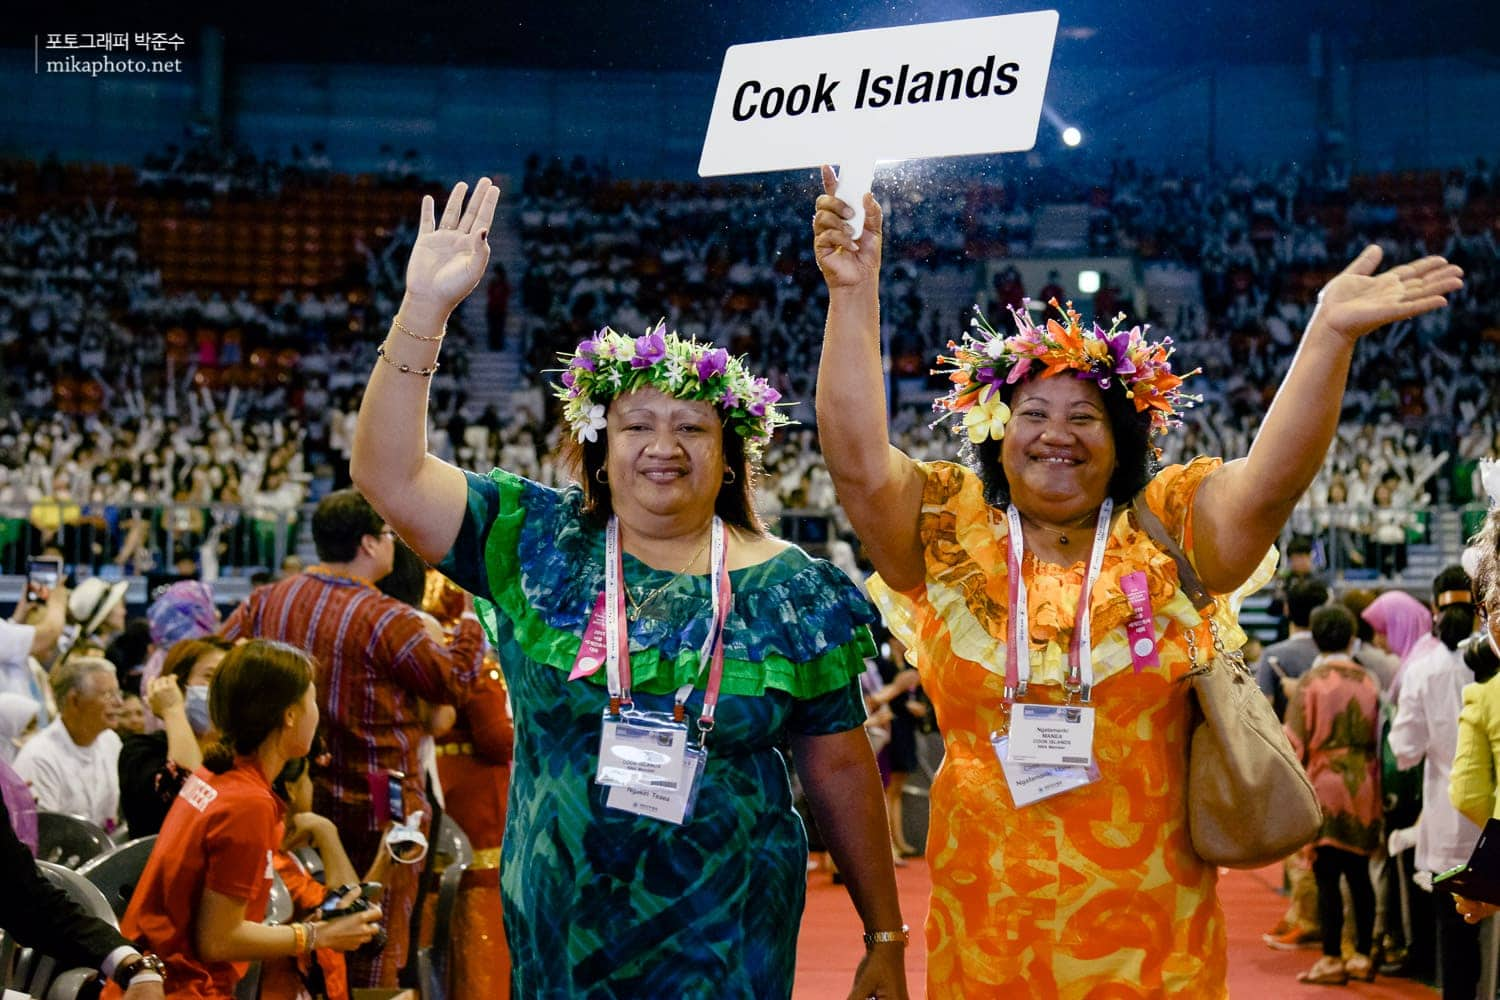 Delegate from Cook Islands.